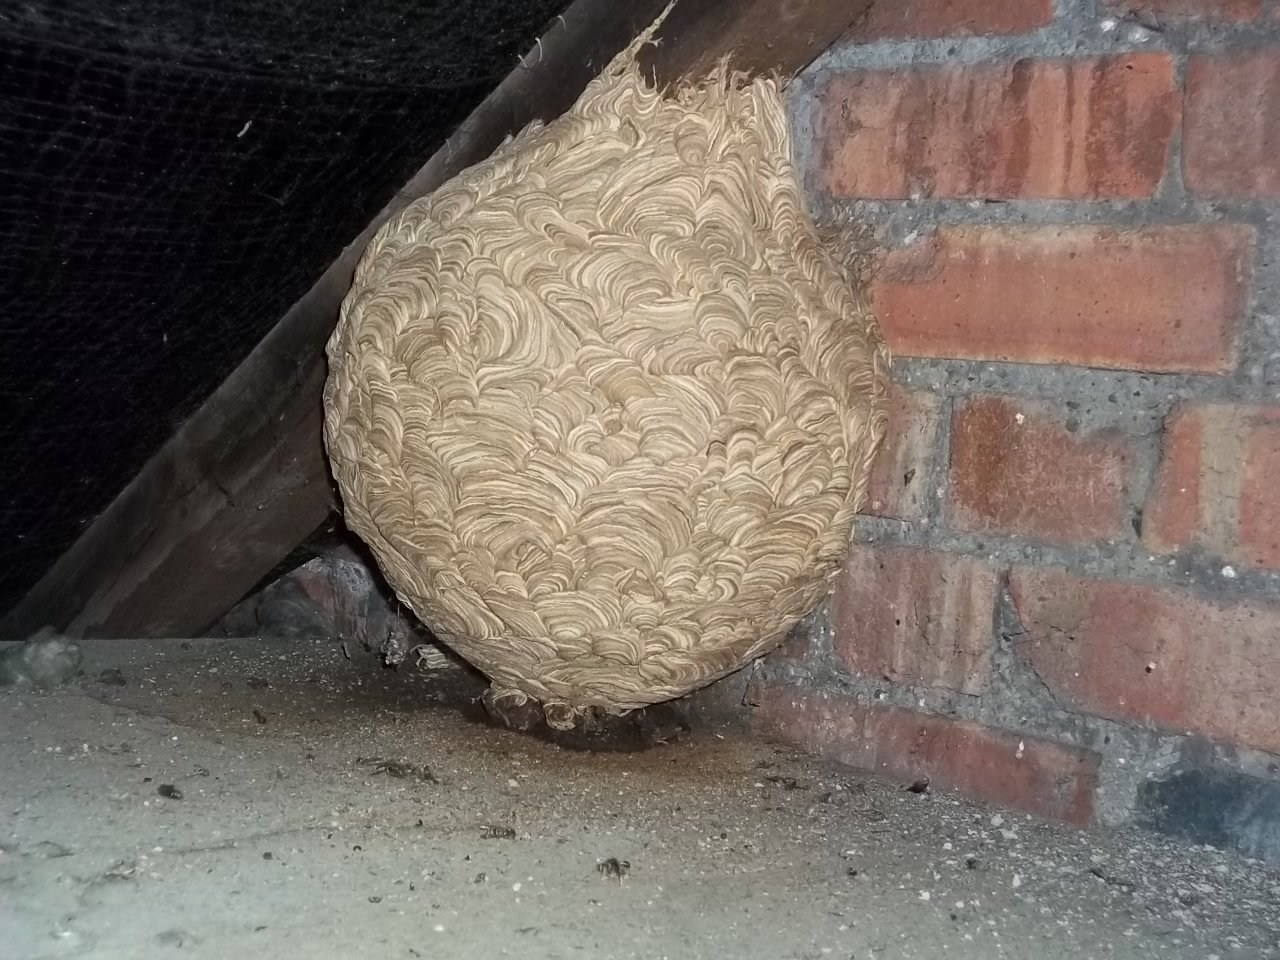 Wasp Nests Lots Of Wasps Means A High Risk Of Being Stung